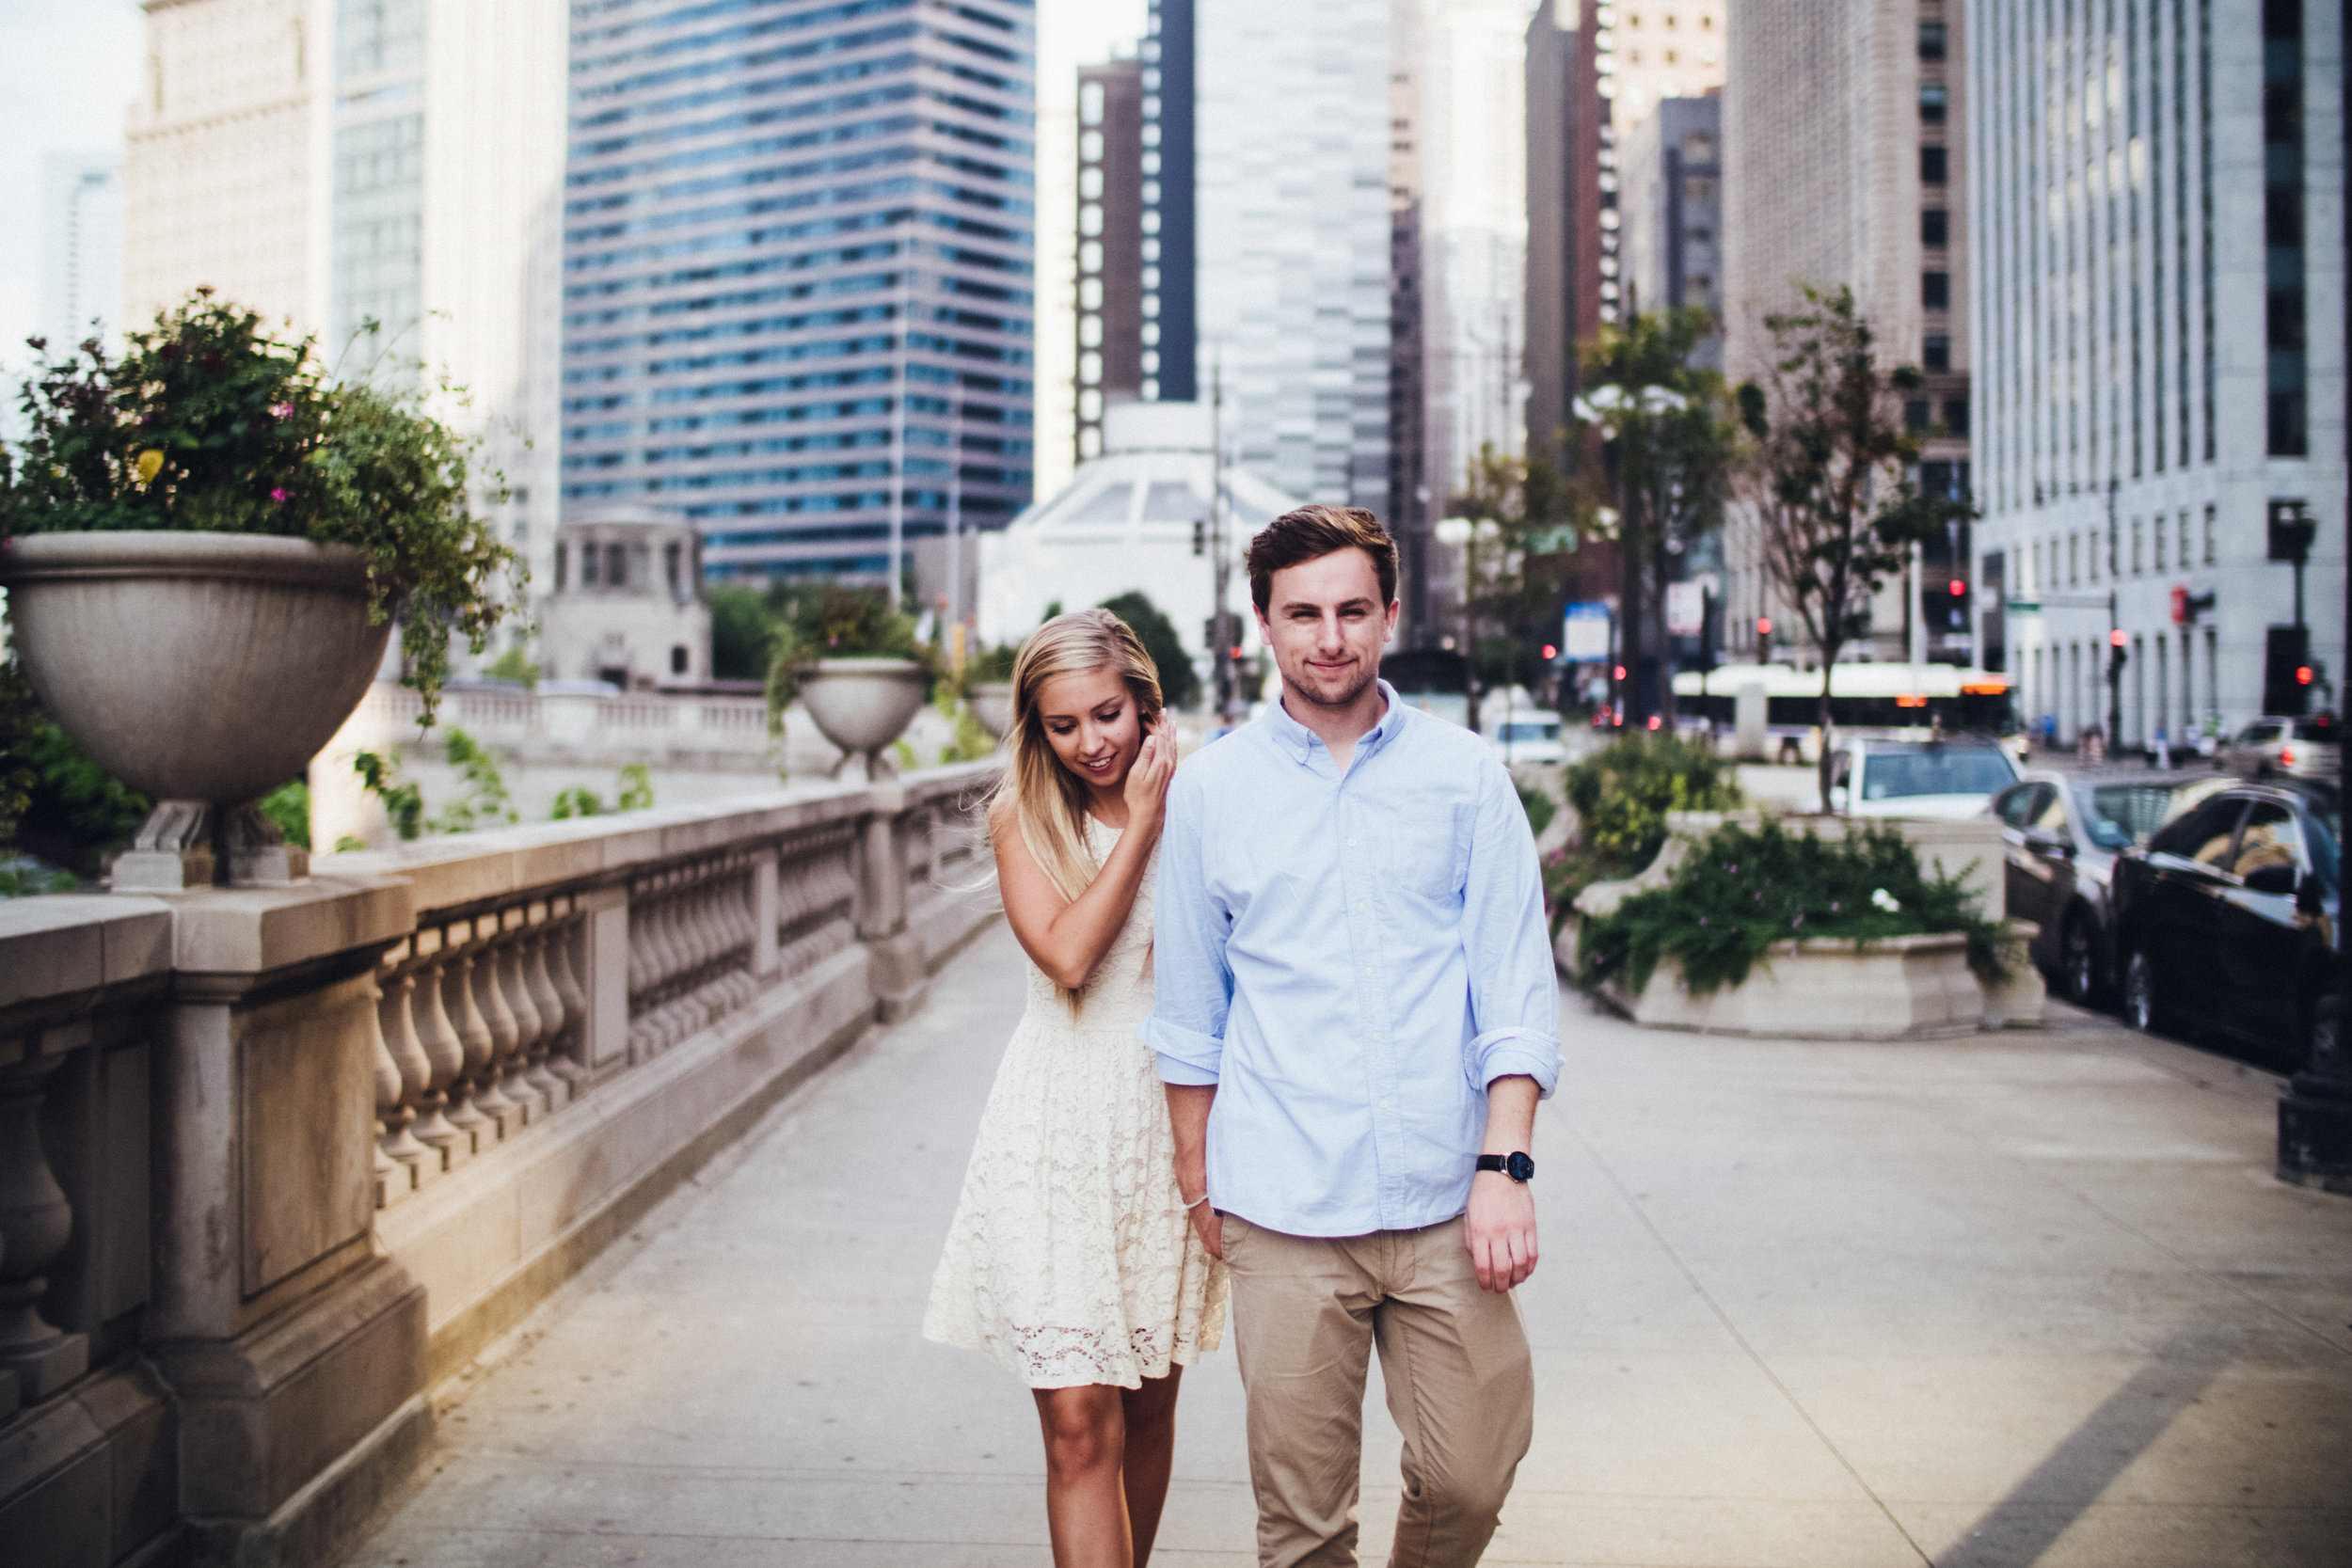 anna-bryce-shadow-shine-pictures-engagement-photography-photographers-photographer-award-winning-destination-chicago